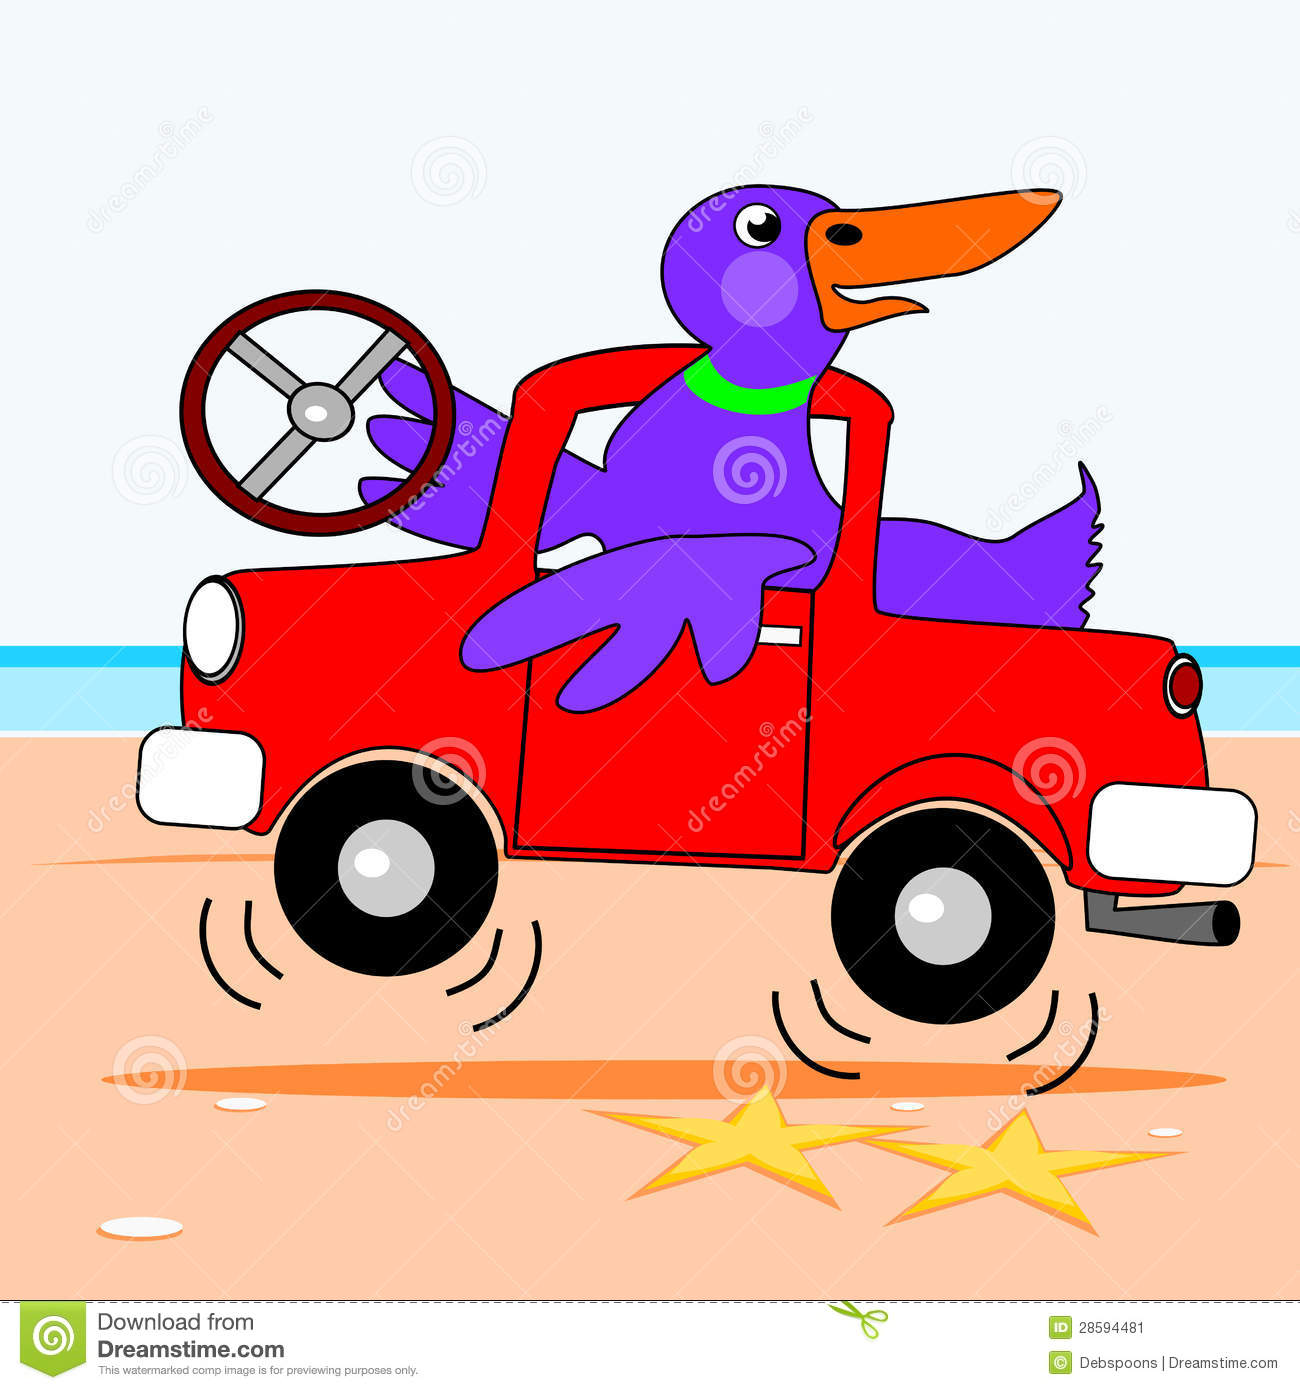 Duck Driving A Truck Stock Image - Image: 28594481